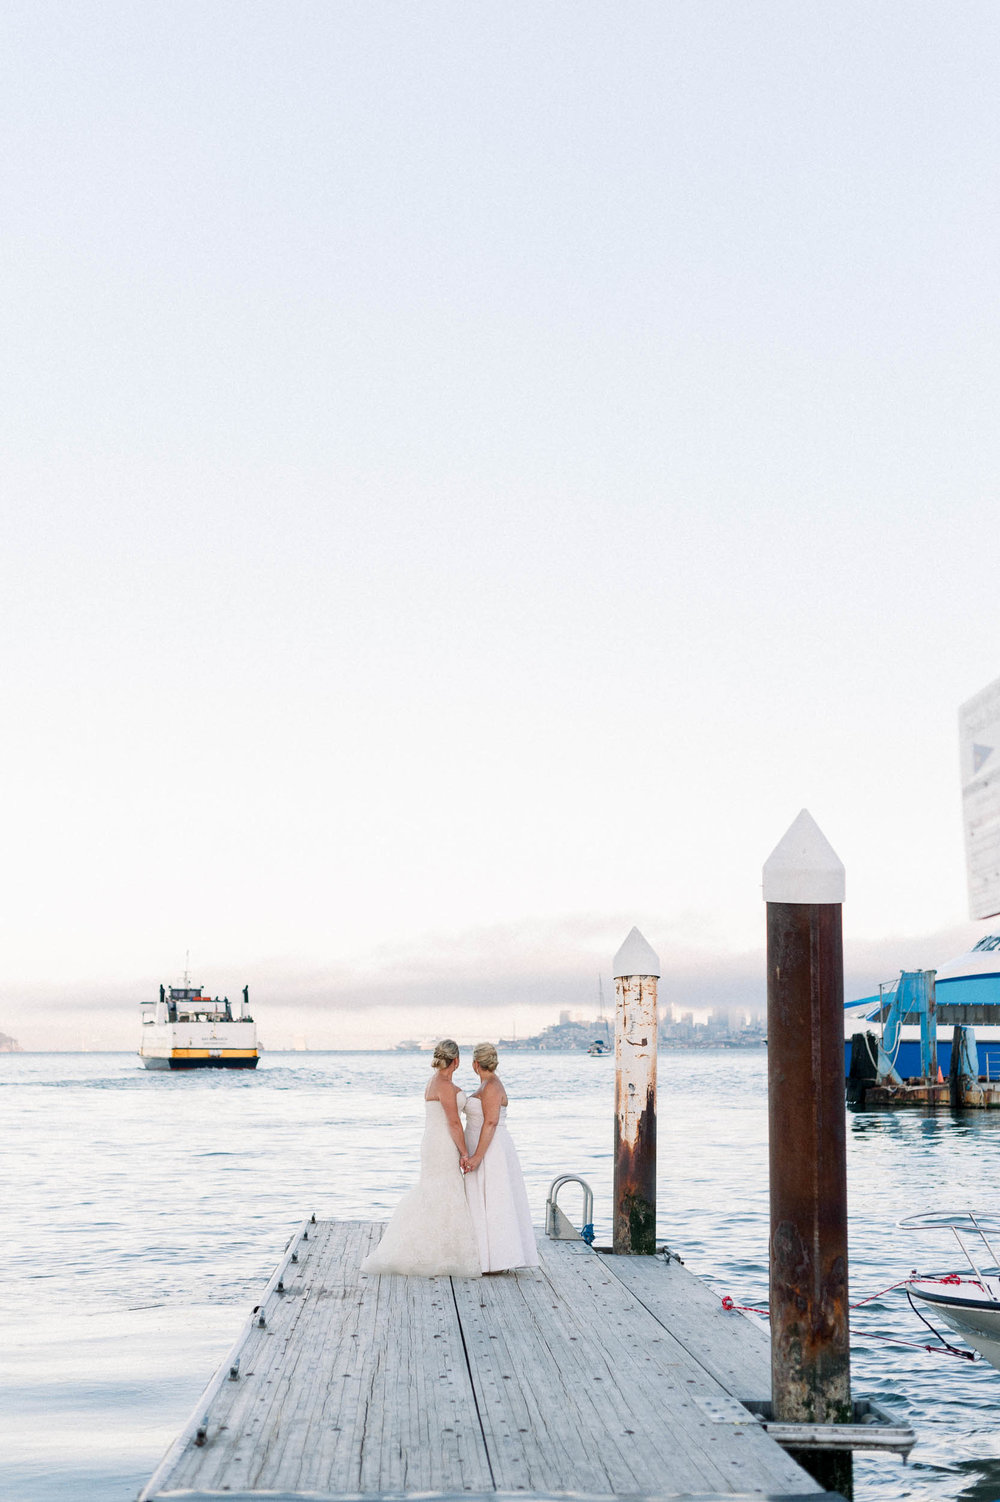 092218KF1213_Sausalito Yacht Club Wedding_Buena Lane Photography.jpg